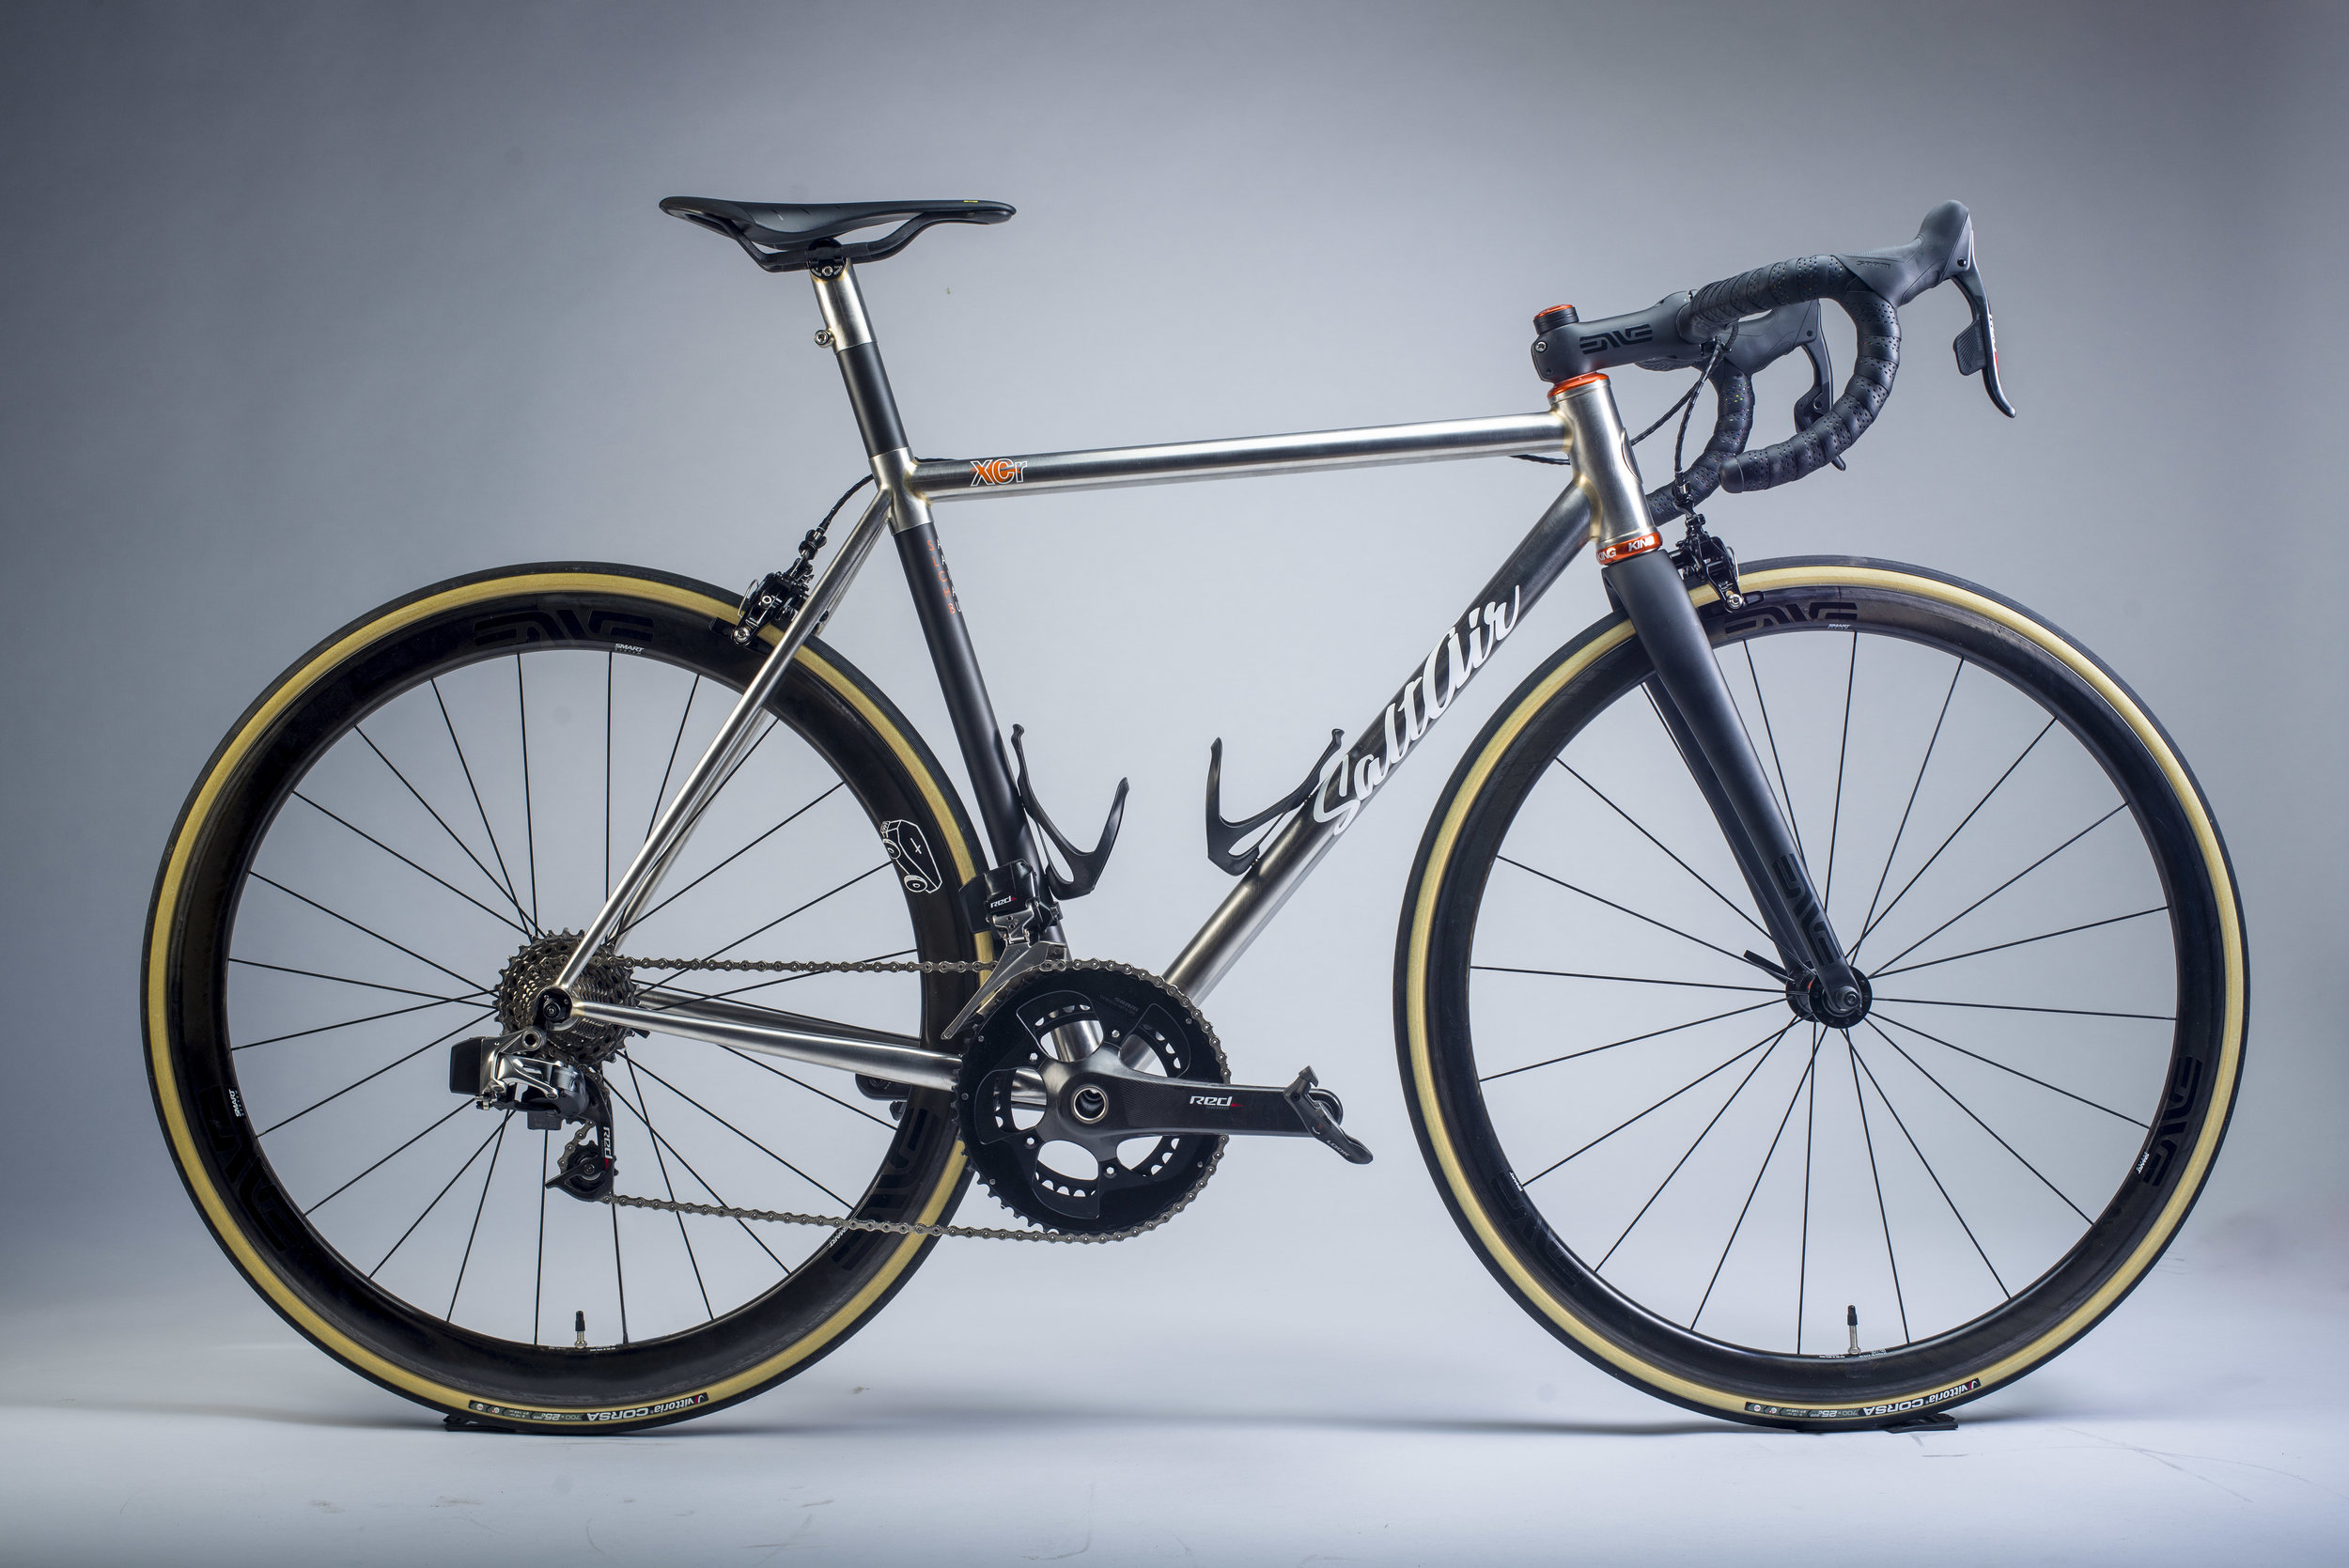 Stainless Steel/Carbon Road